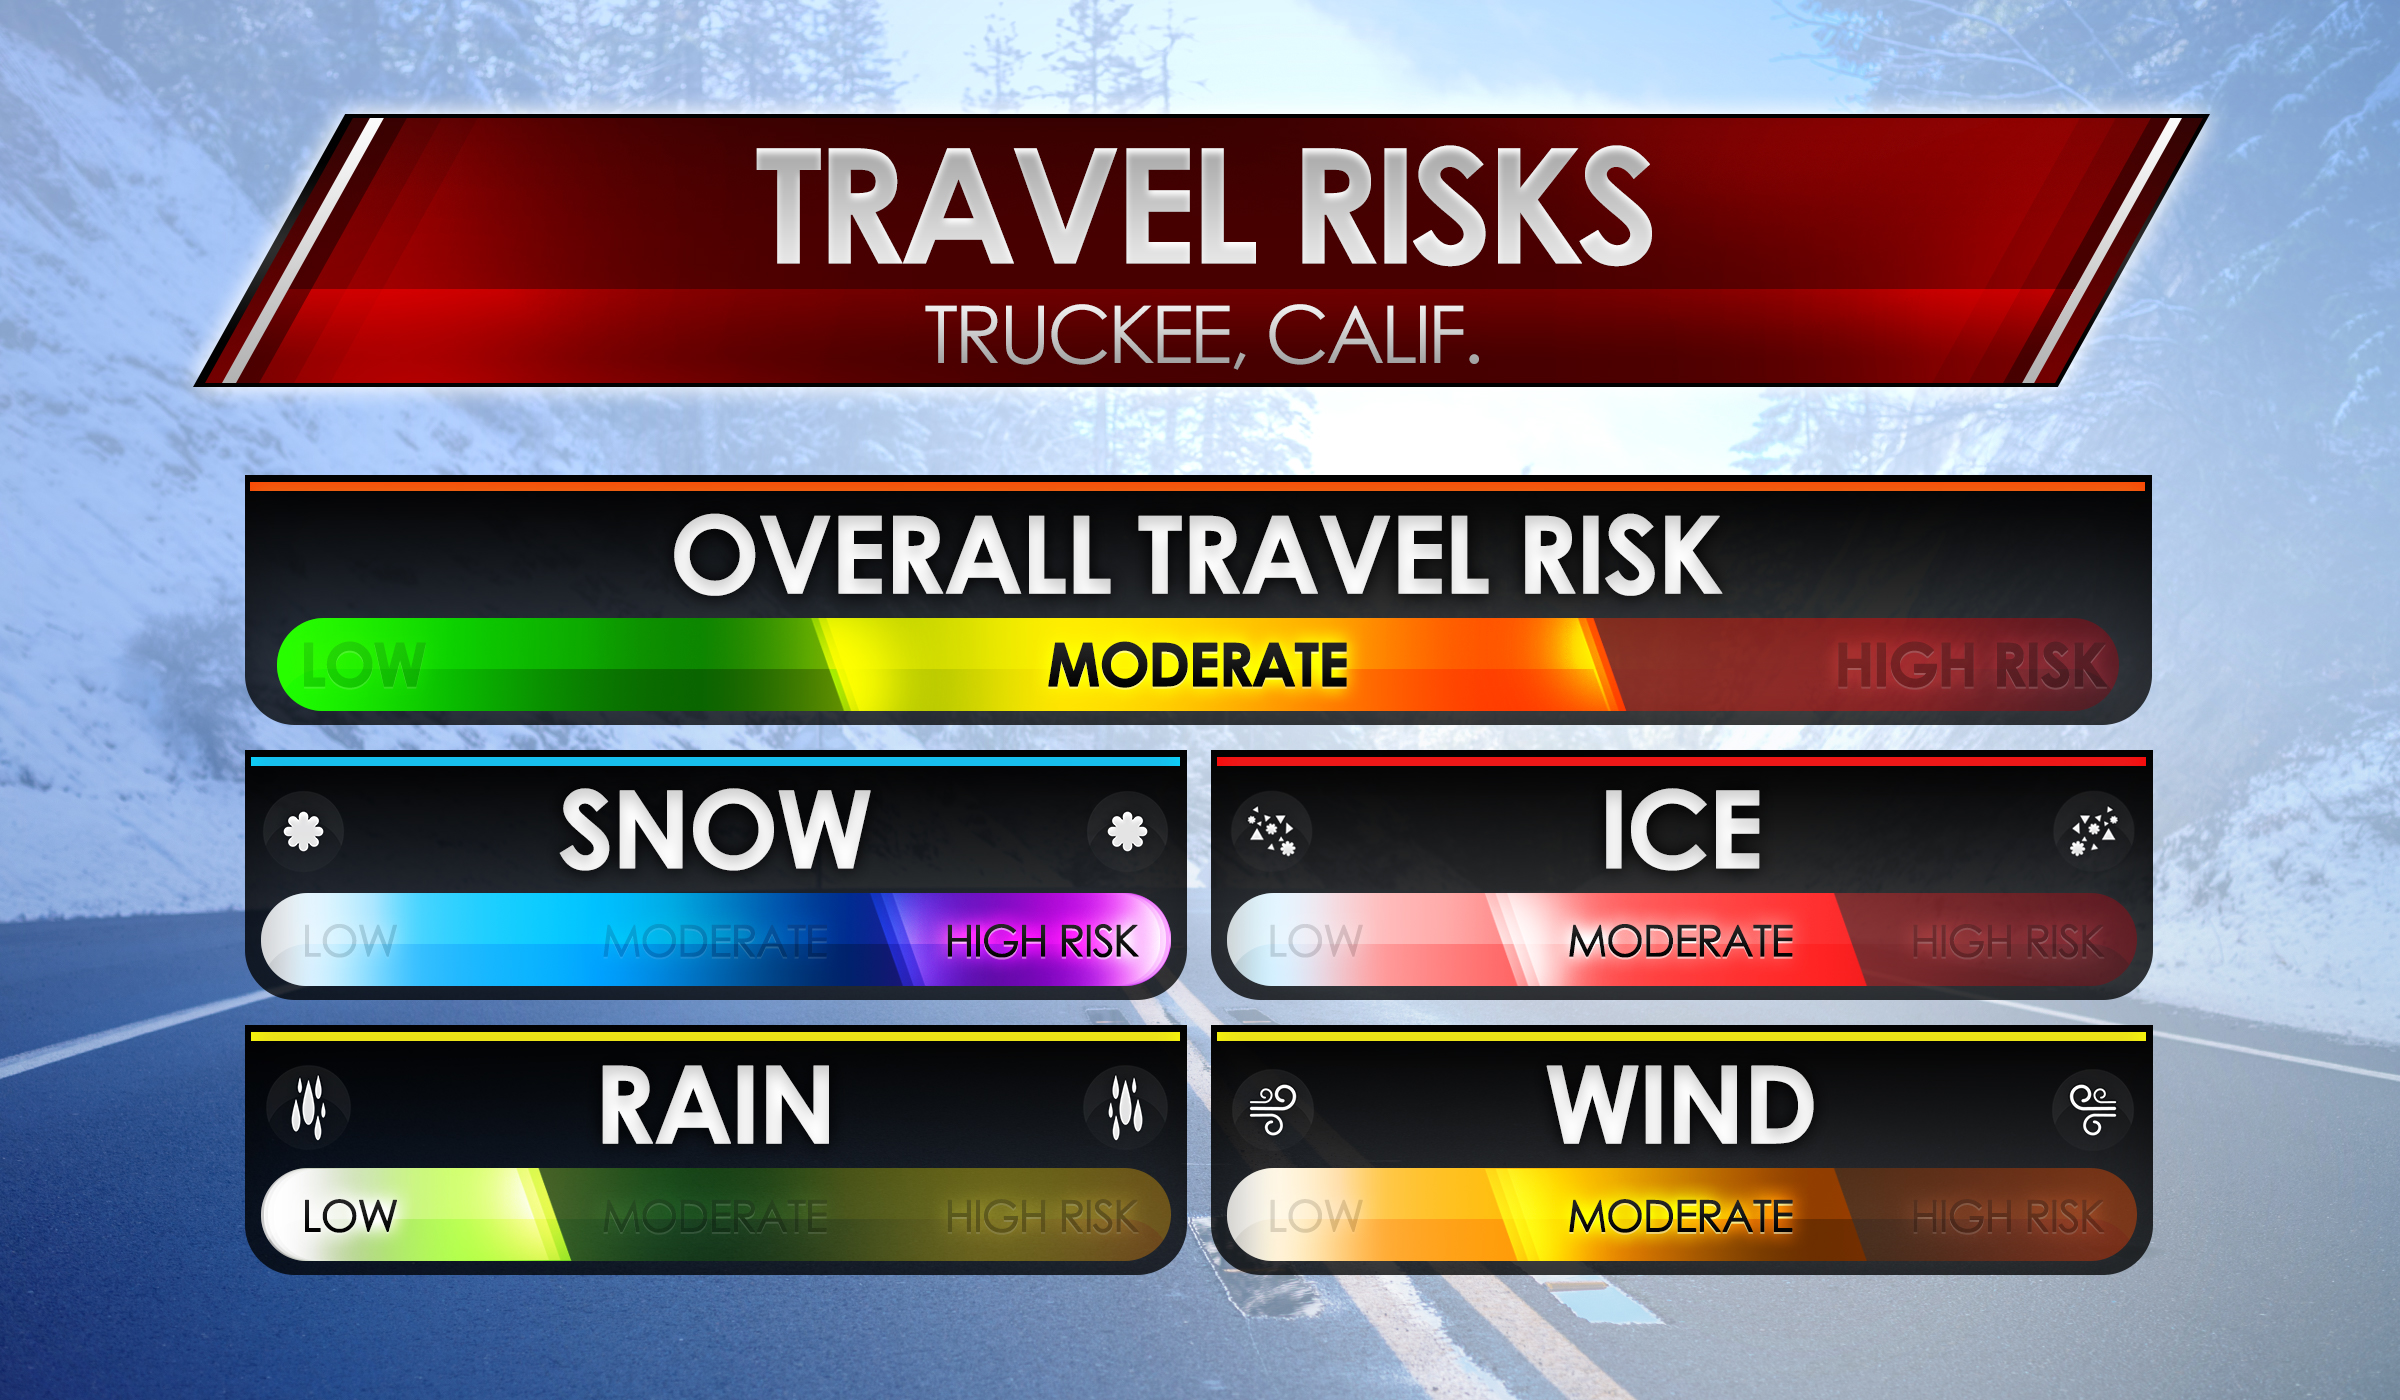 Travel Risk Truckee